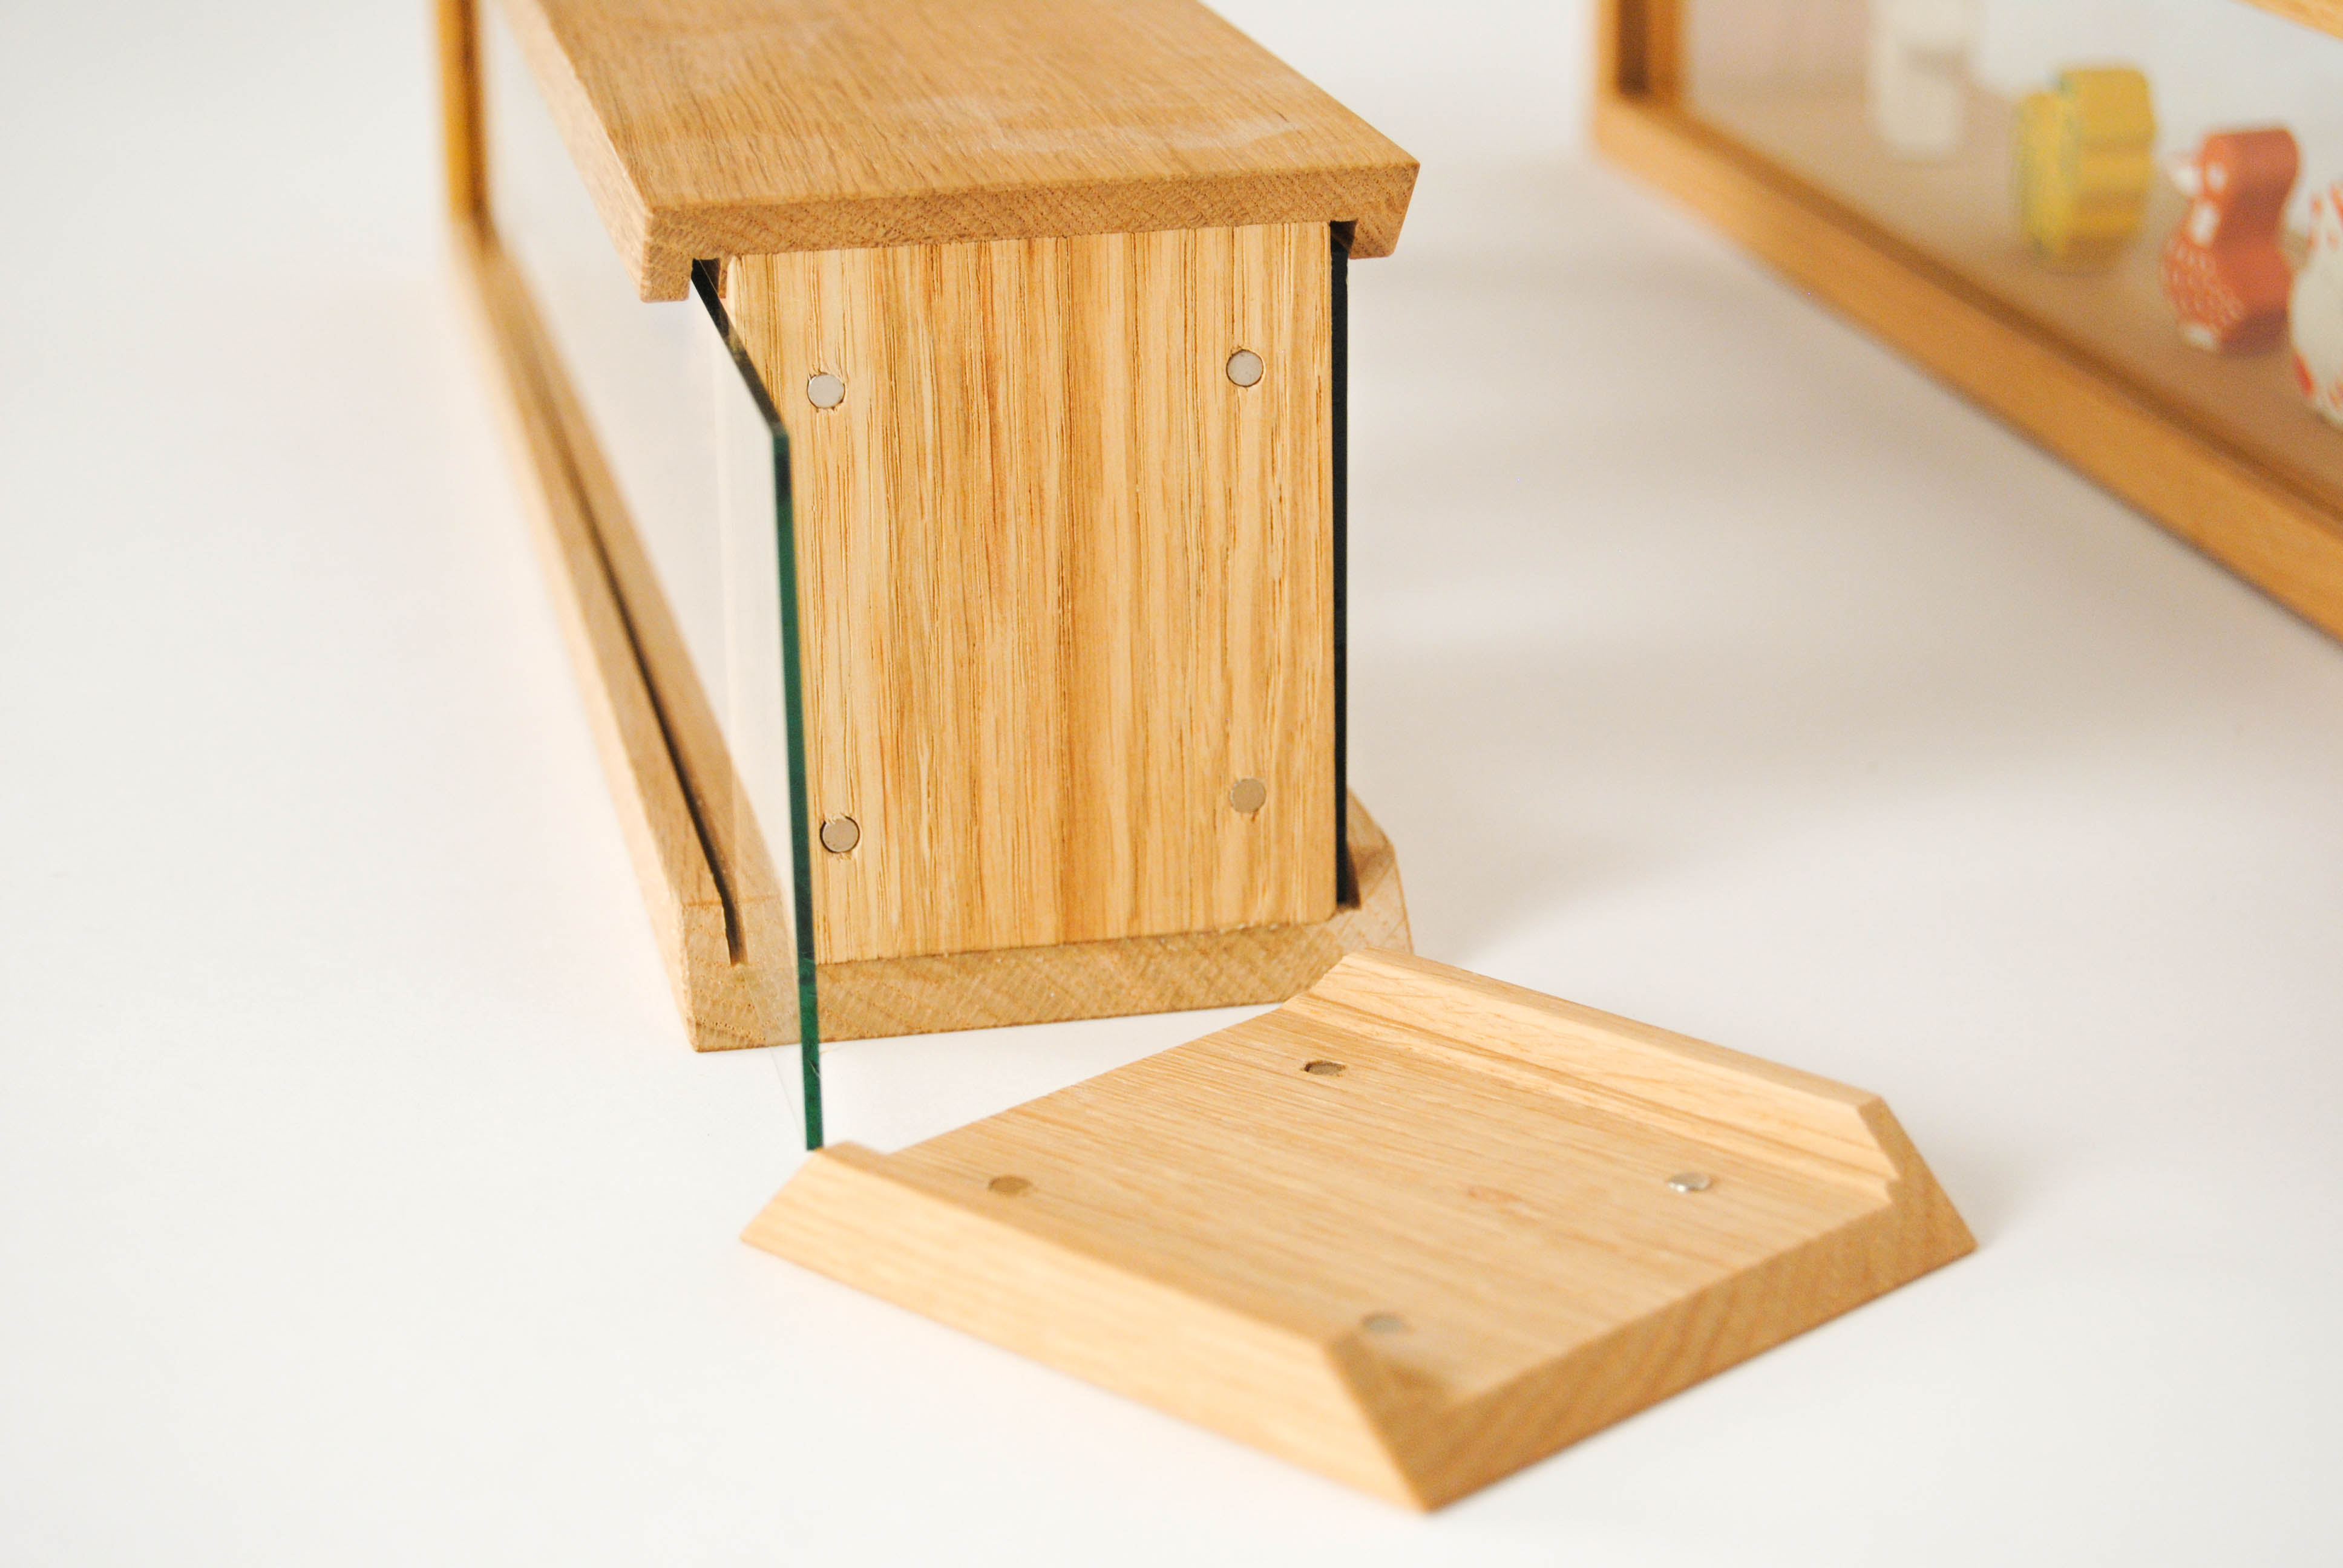 rack wooden table showcase with magnetic closure and glass